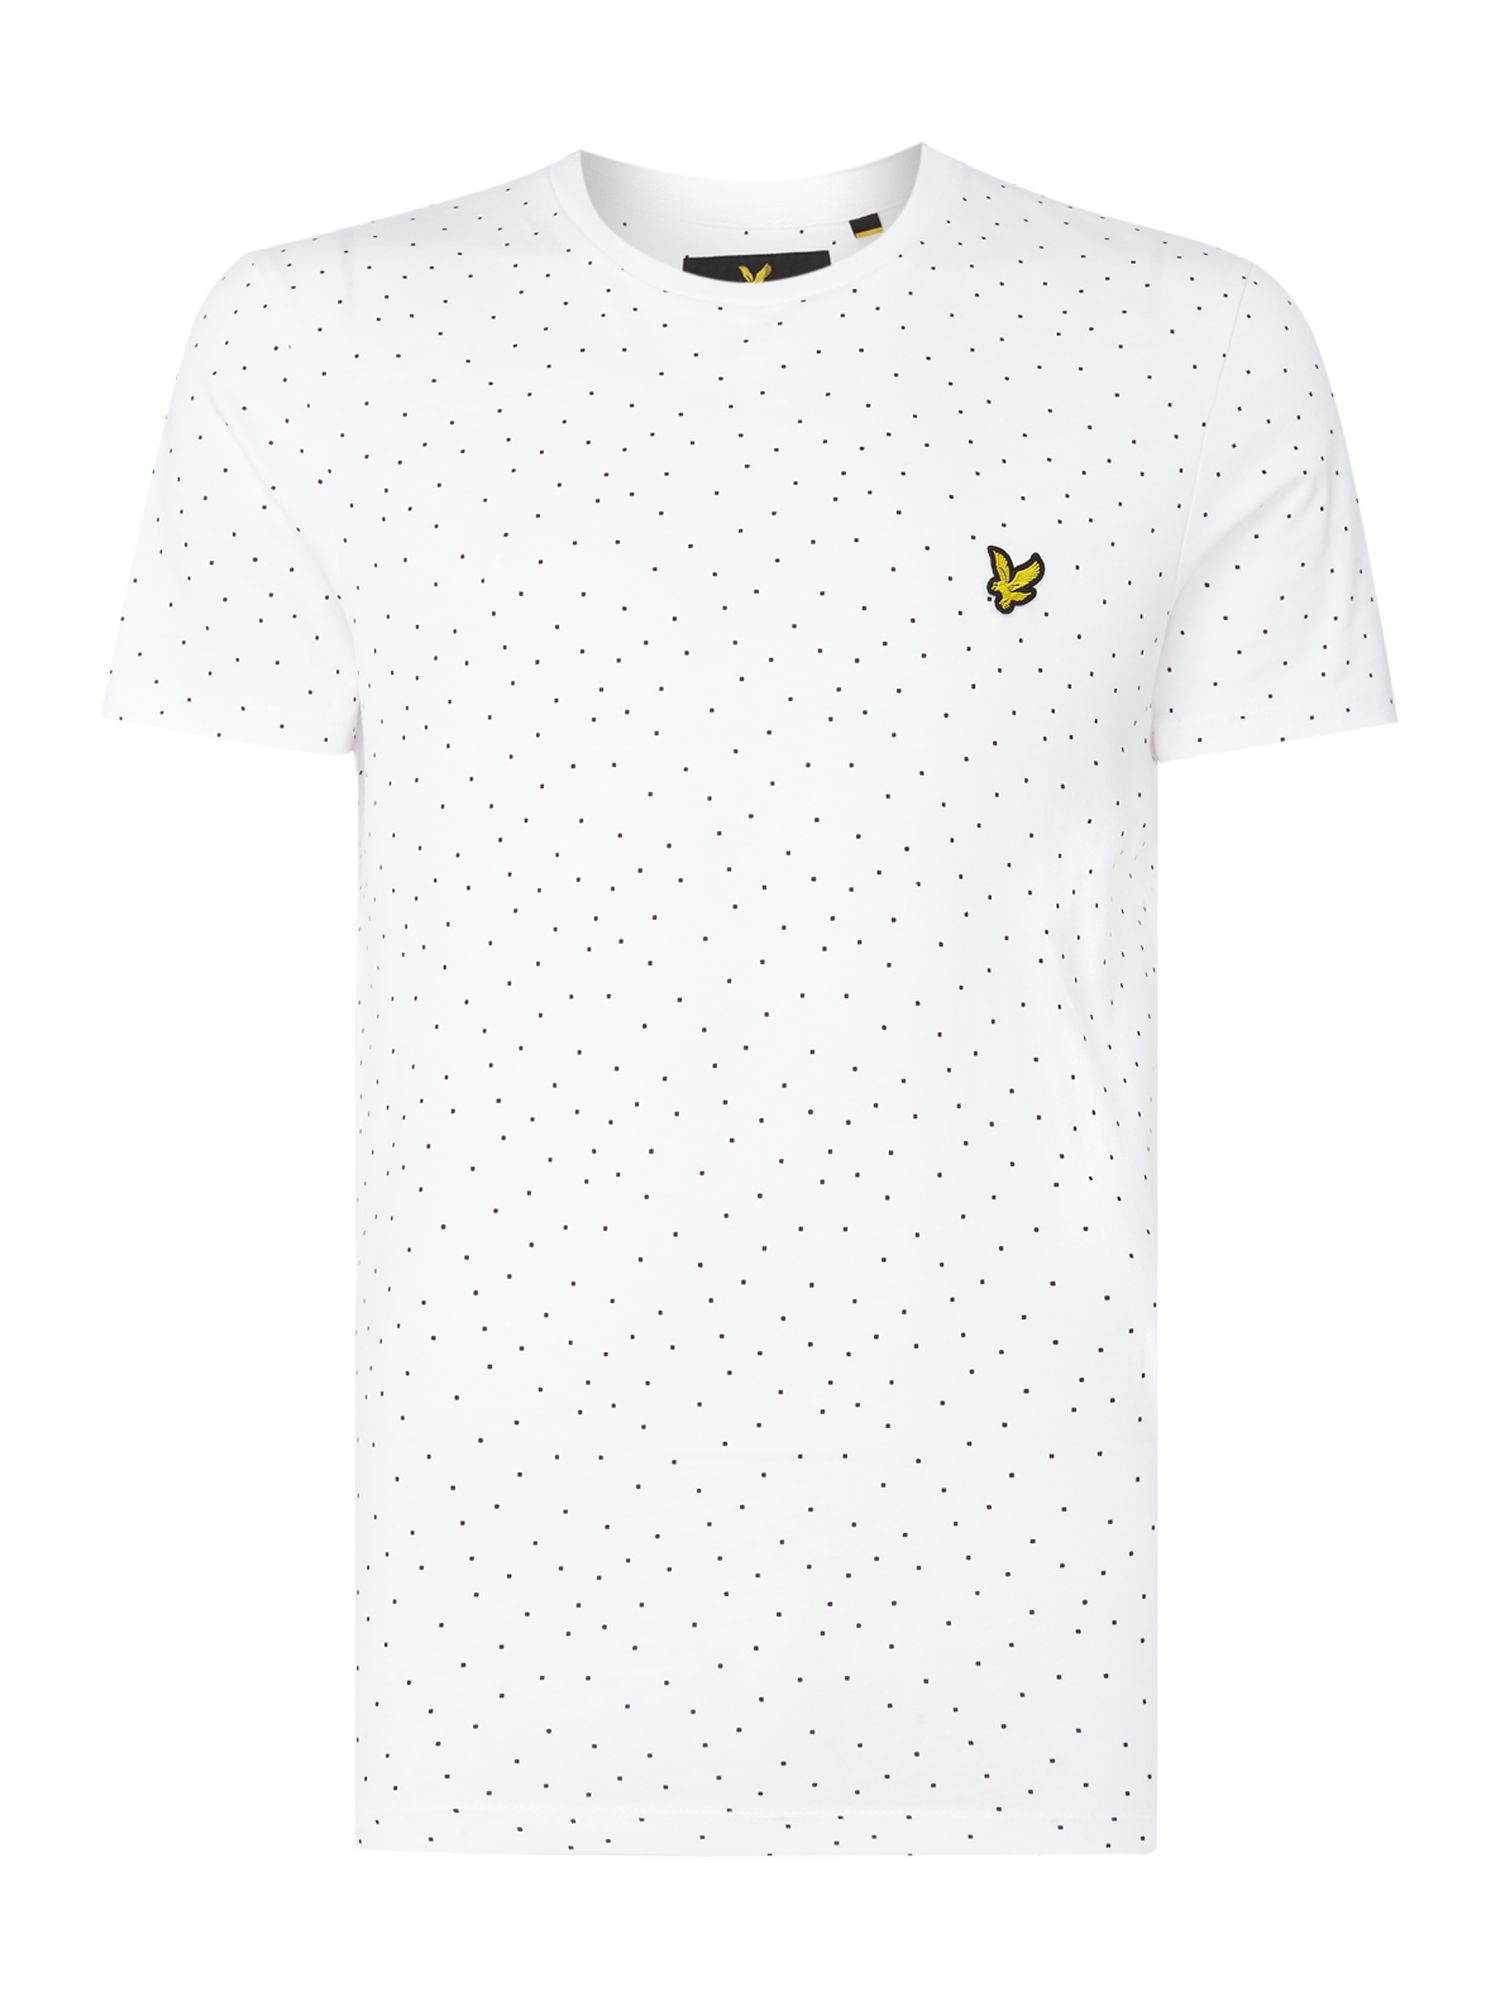 Men's Lyle and Scott Minimal dot crew neck short sleeve t-shirt, White